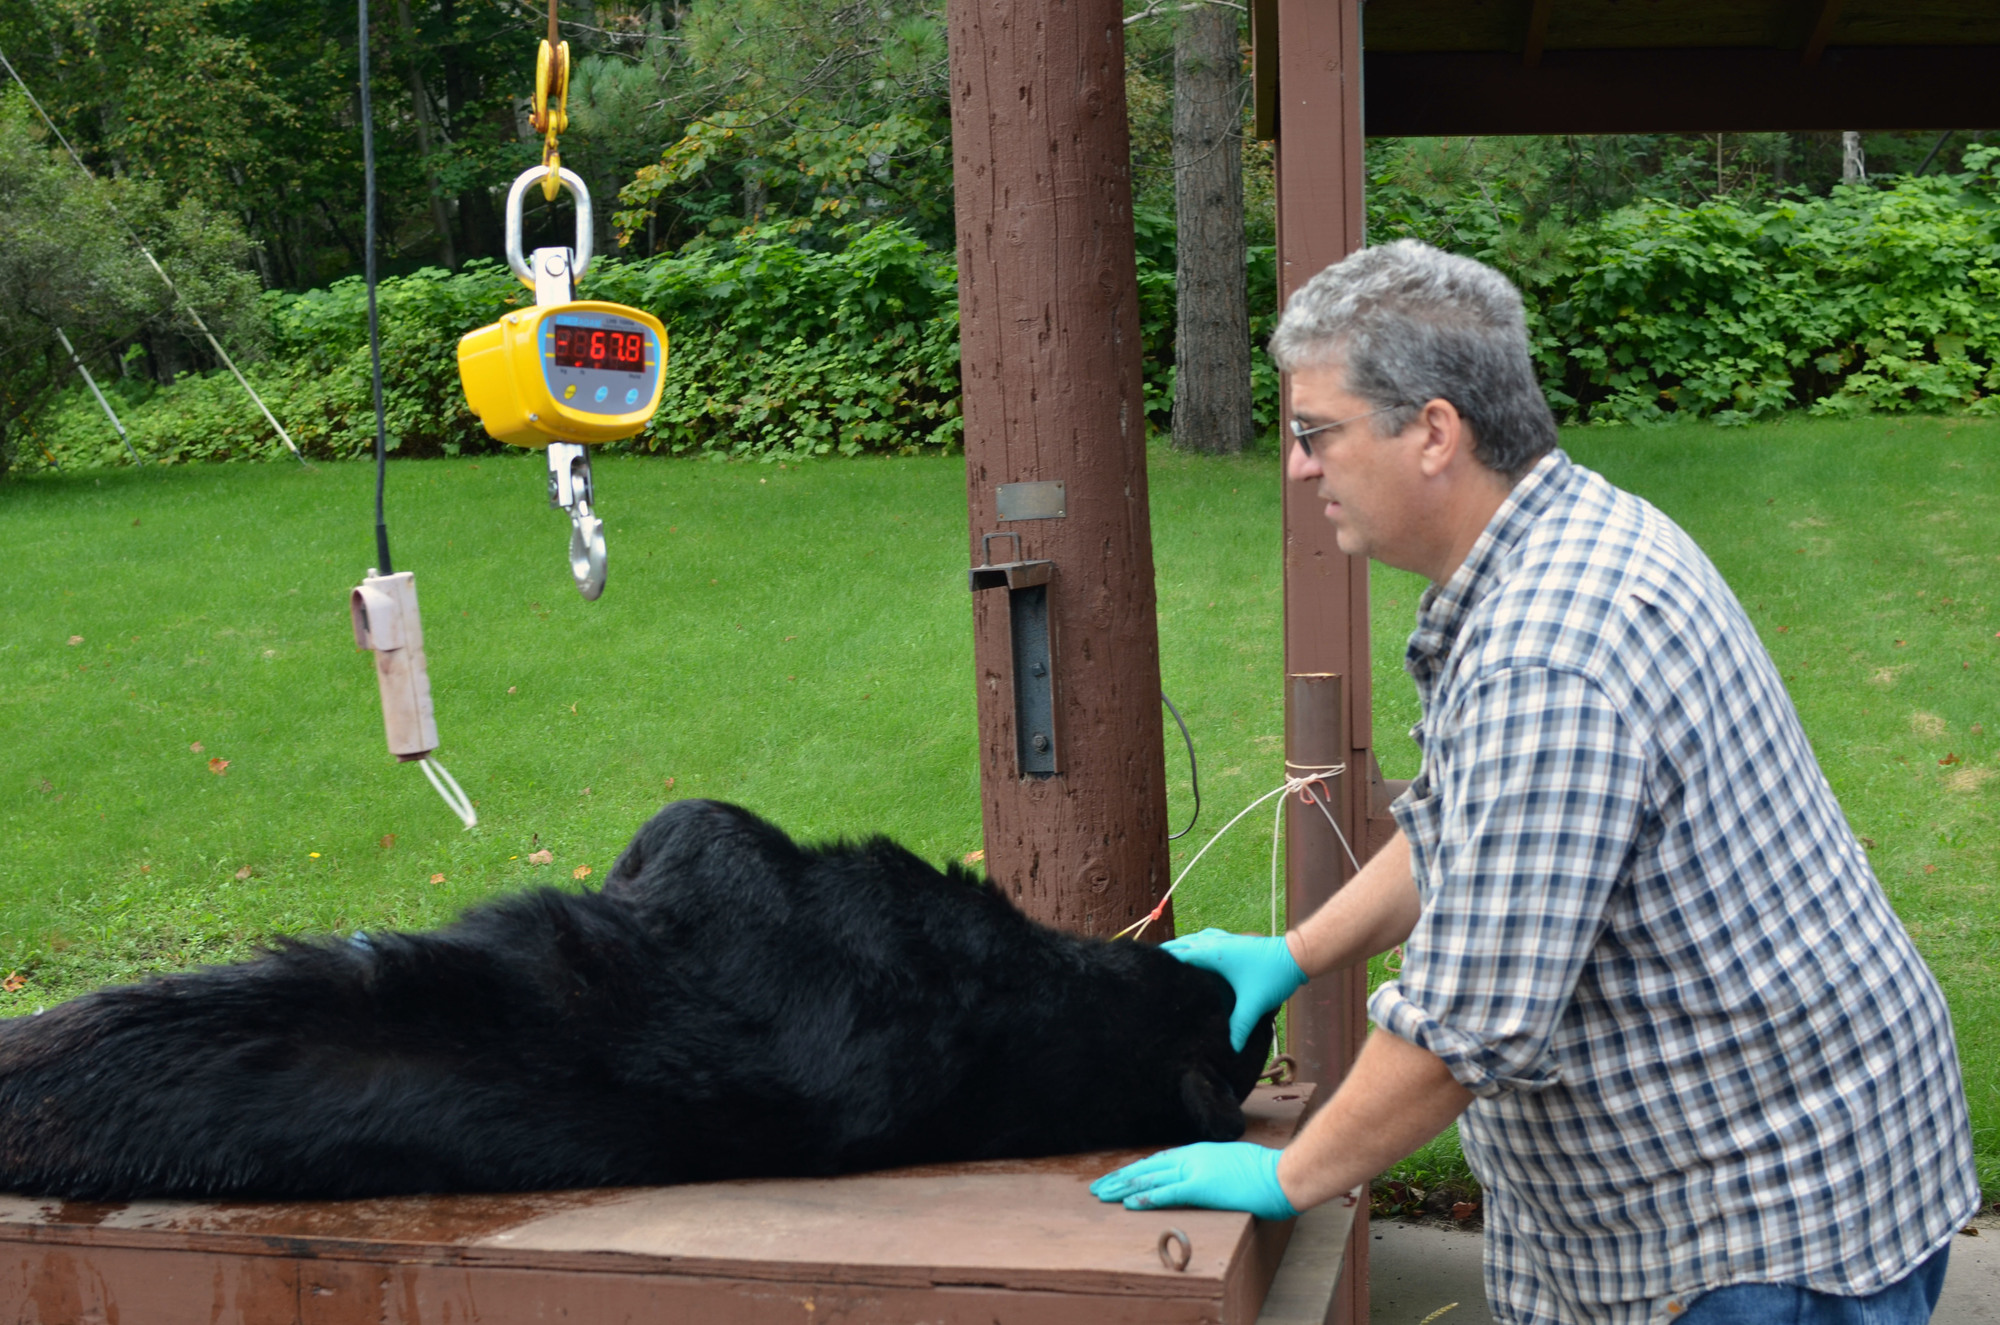 Michigan DNR wildlife biologist Brian Roell gets ready to weigh a black bear at the DNR's Marquette Customer Service Center in fall 2016.